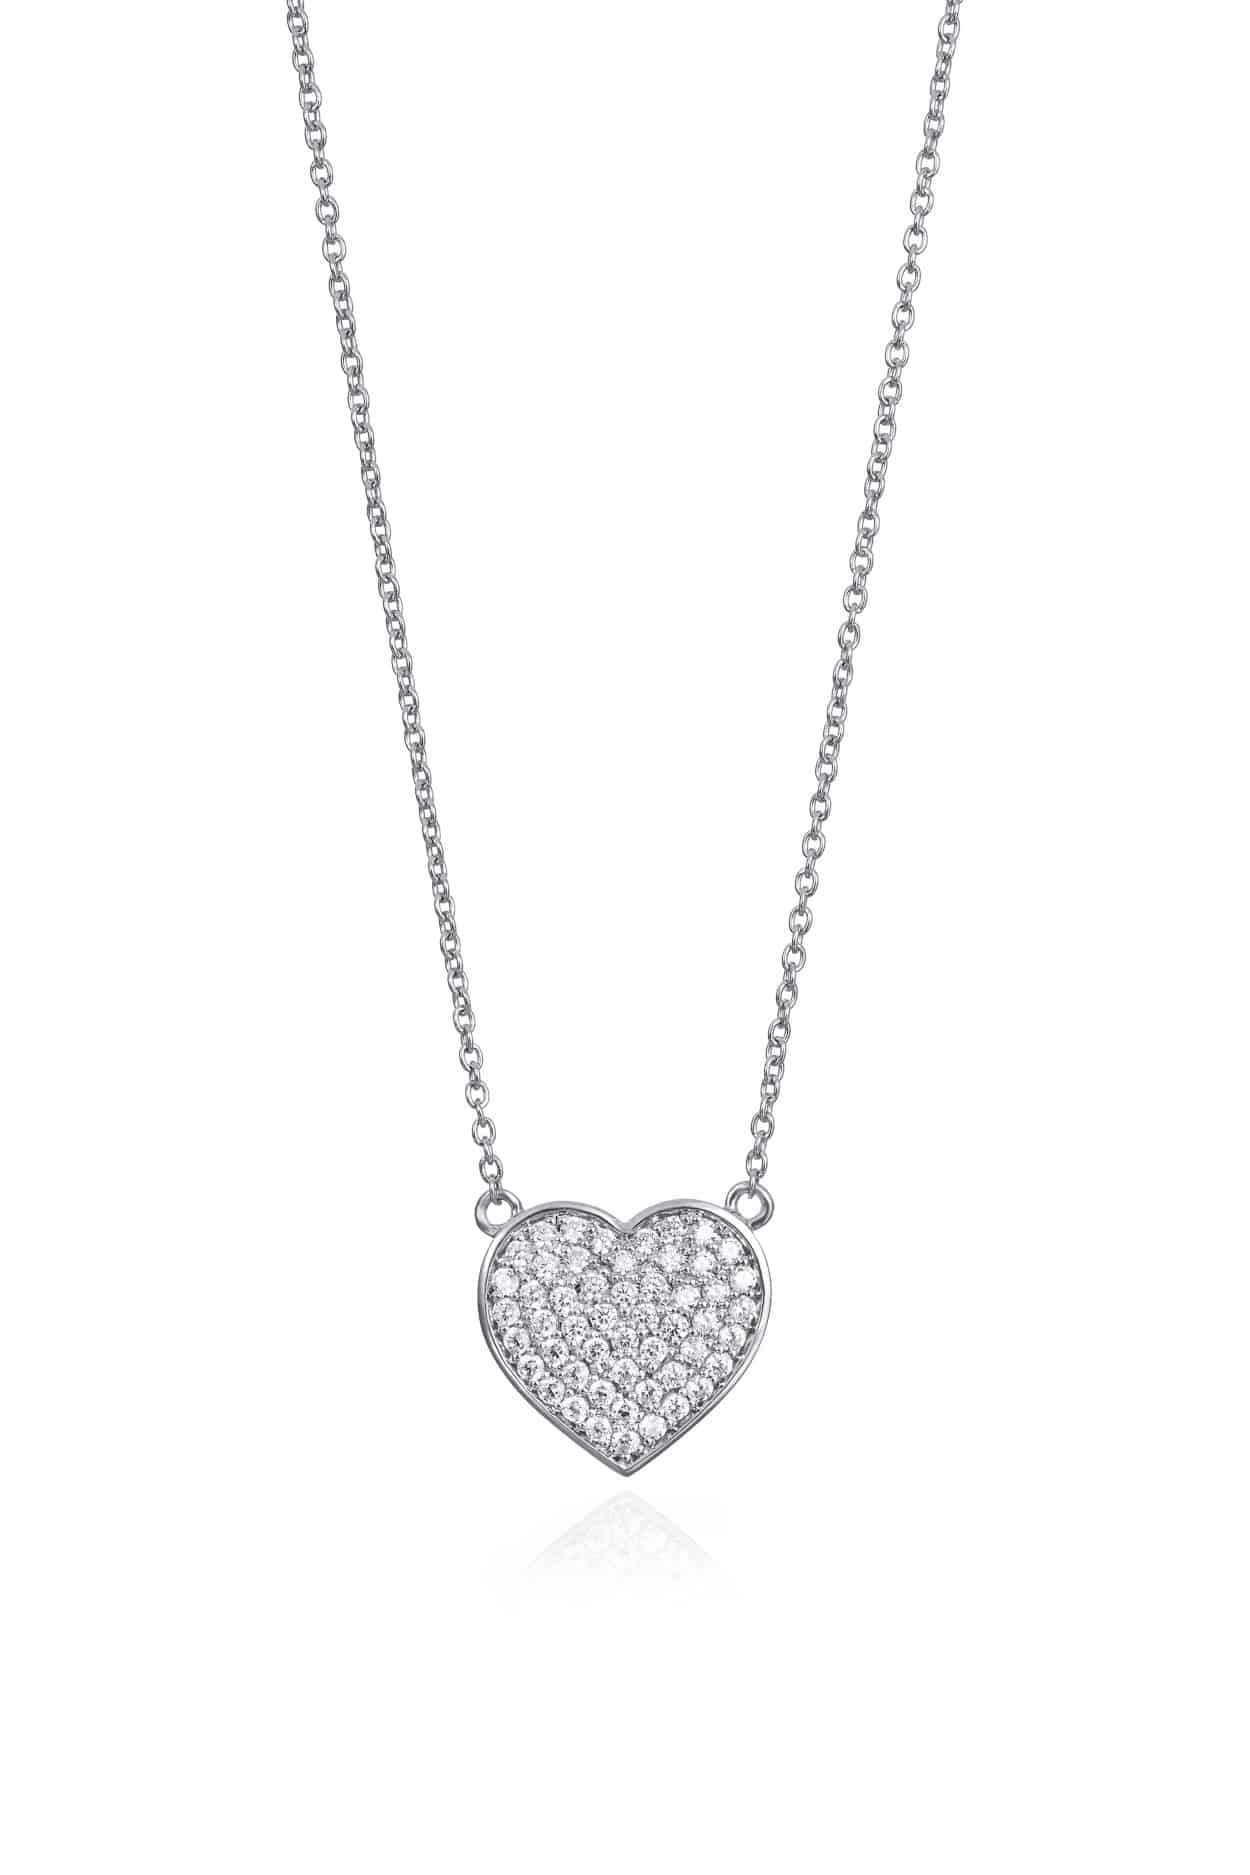 Heart Pavee Set Pendant